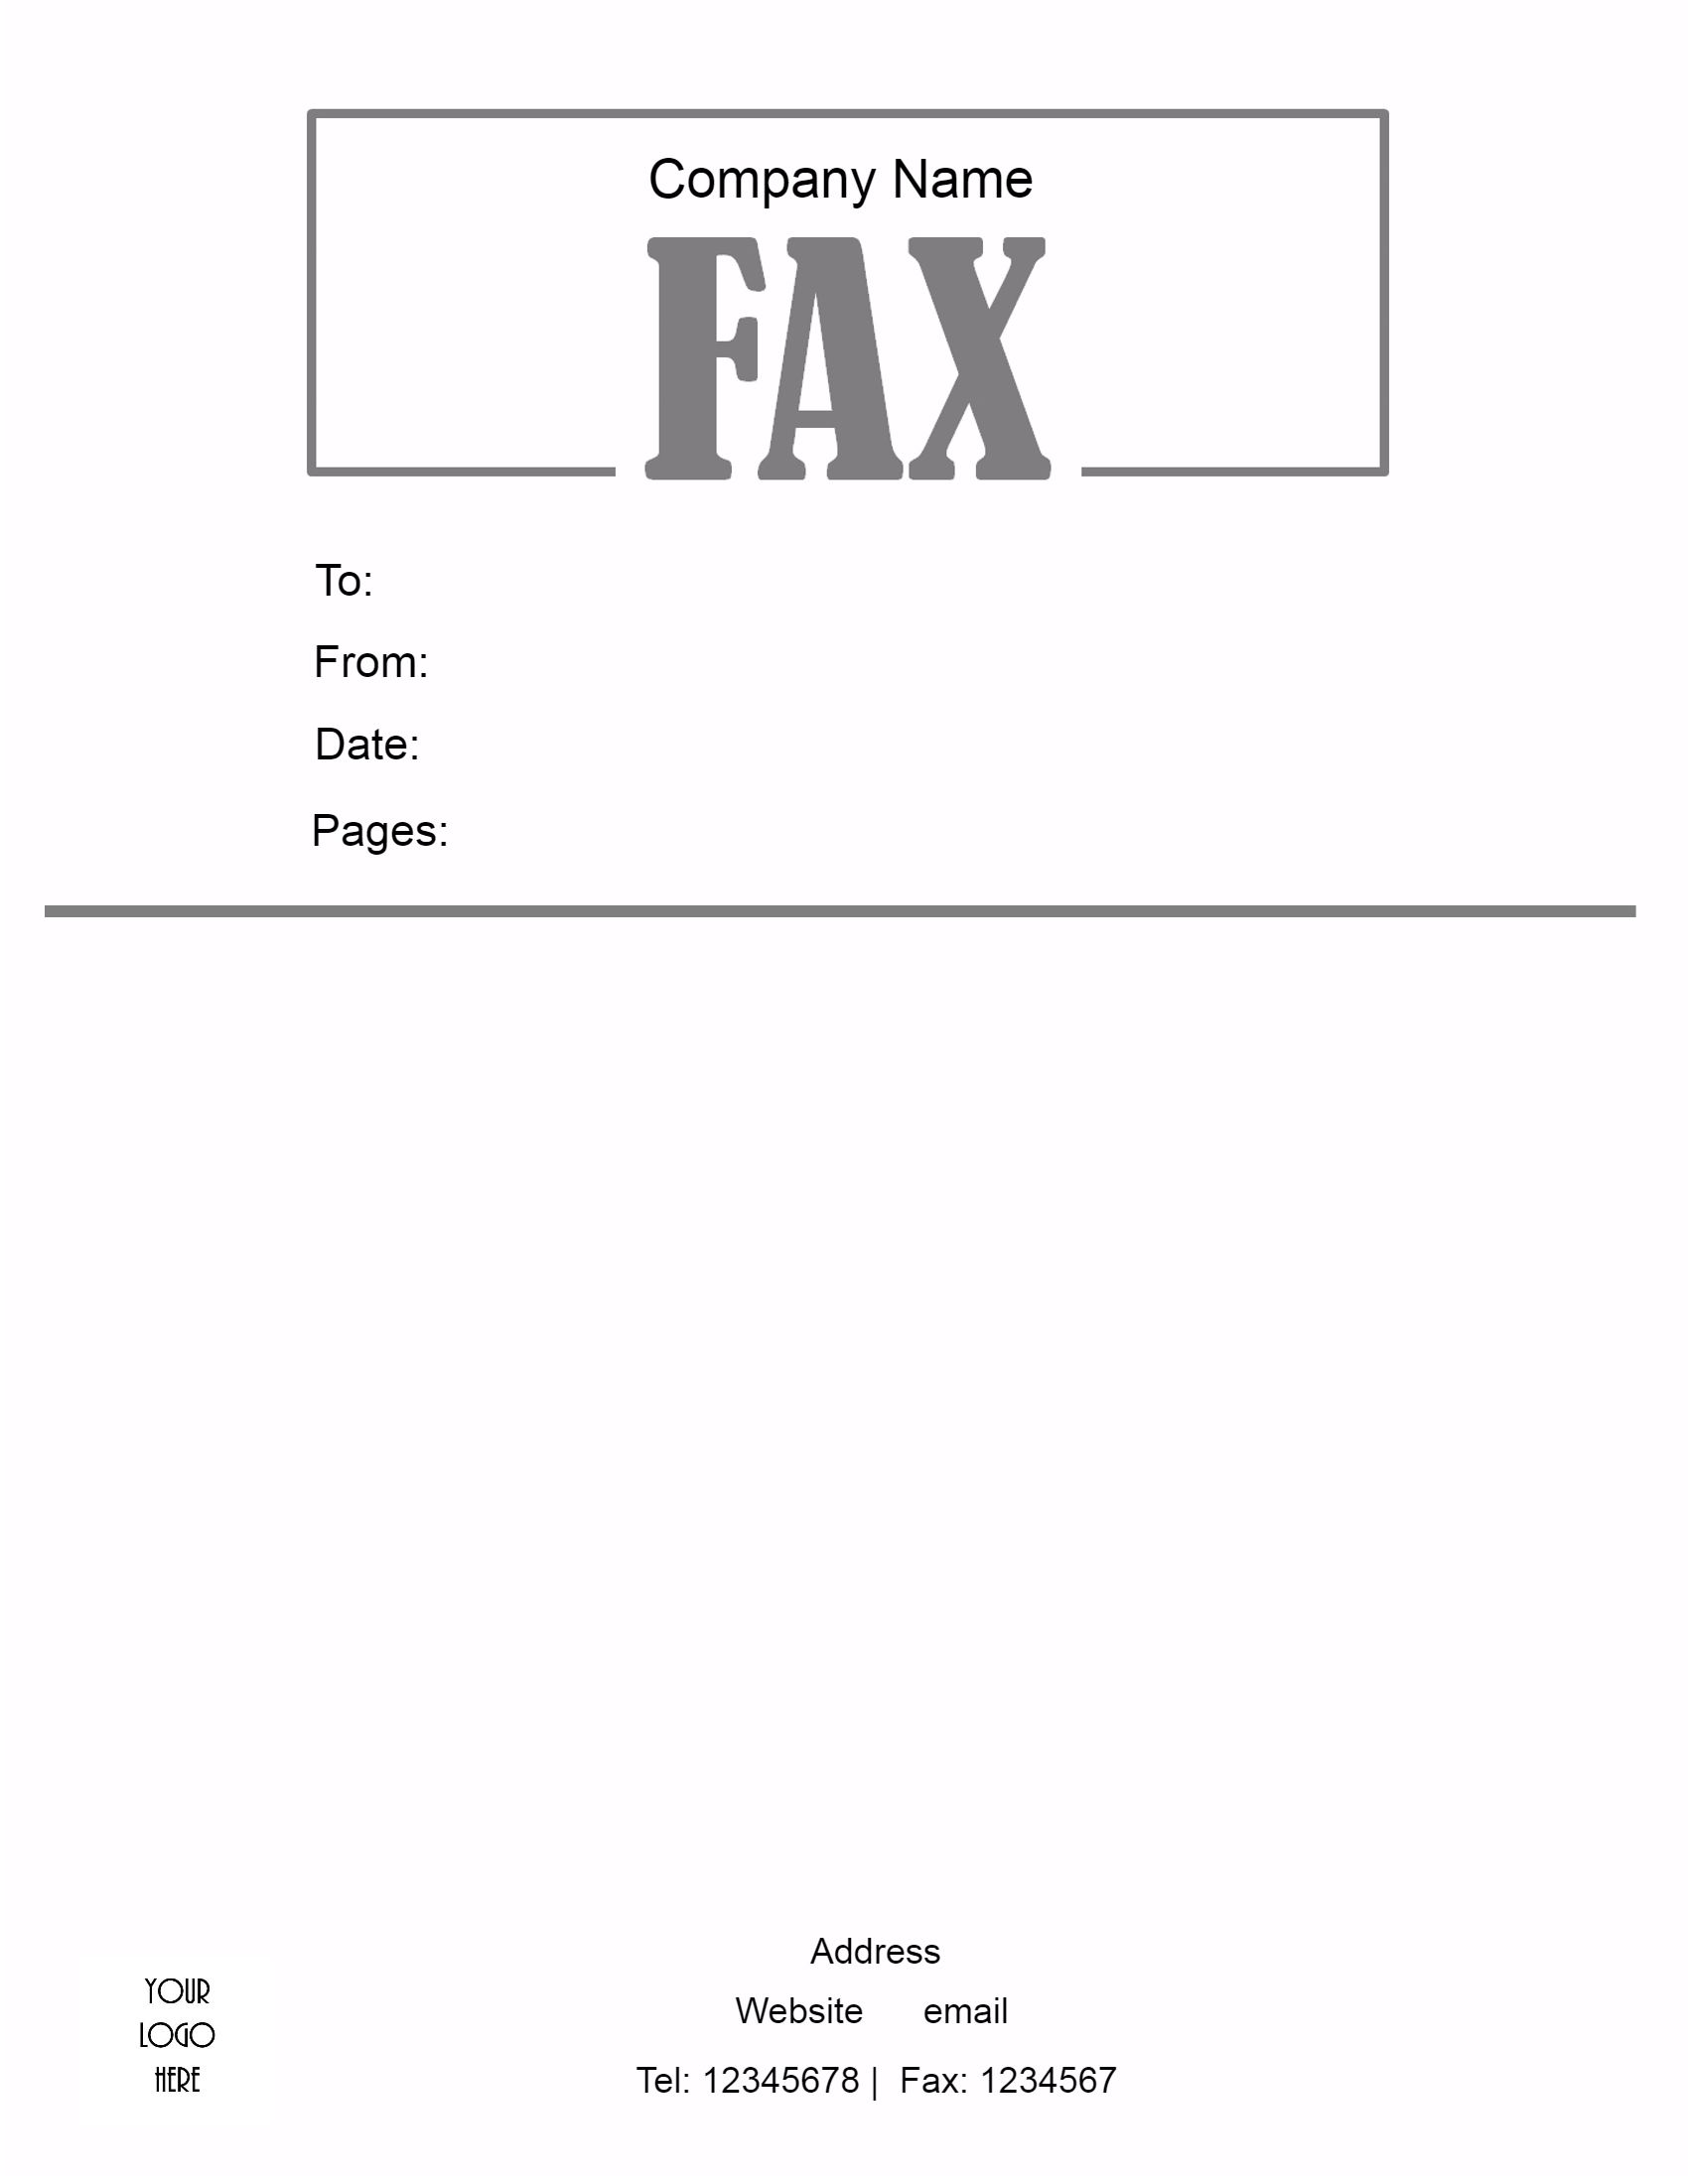 Fax Cover Word Fax Cover Template Word Example Resume Cv Fax Cover